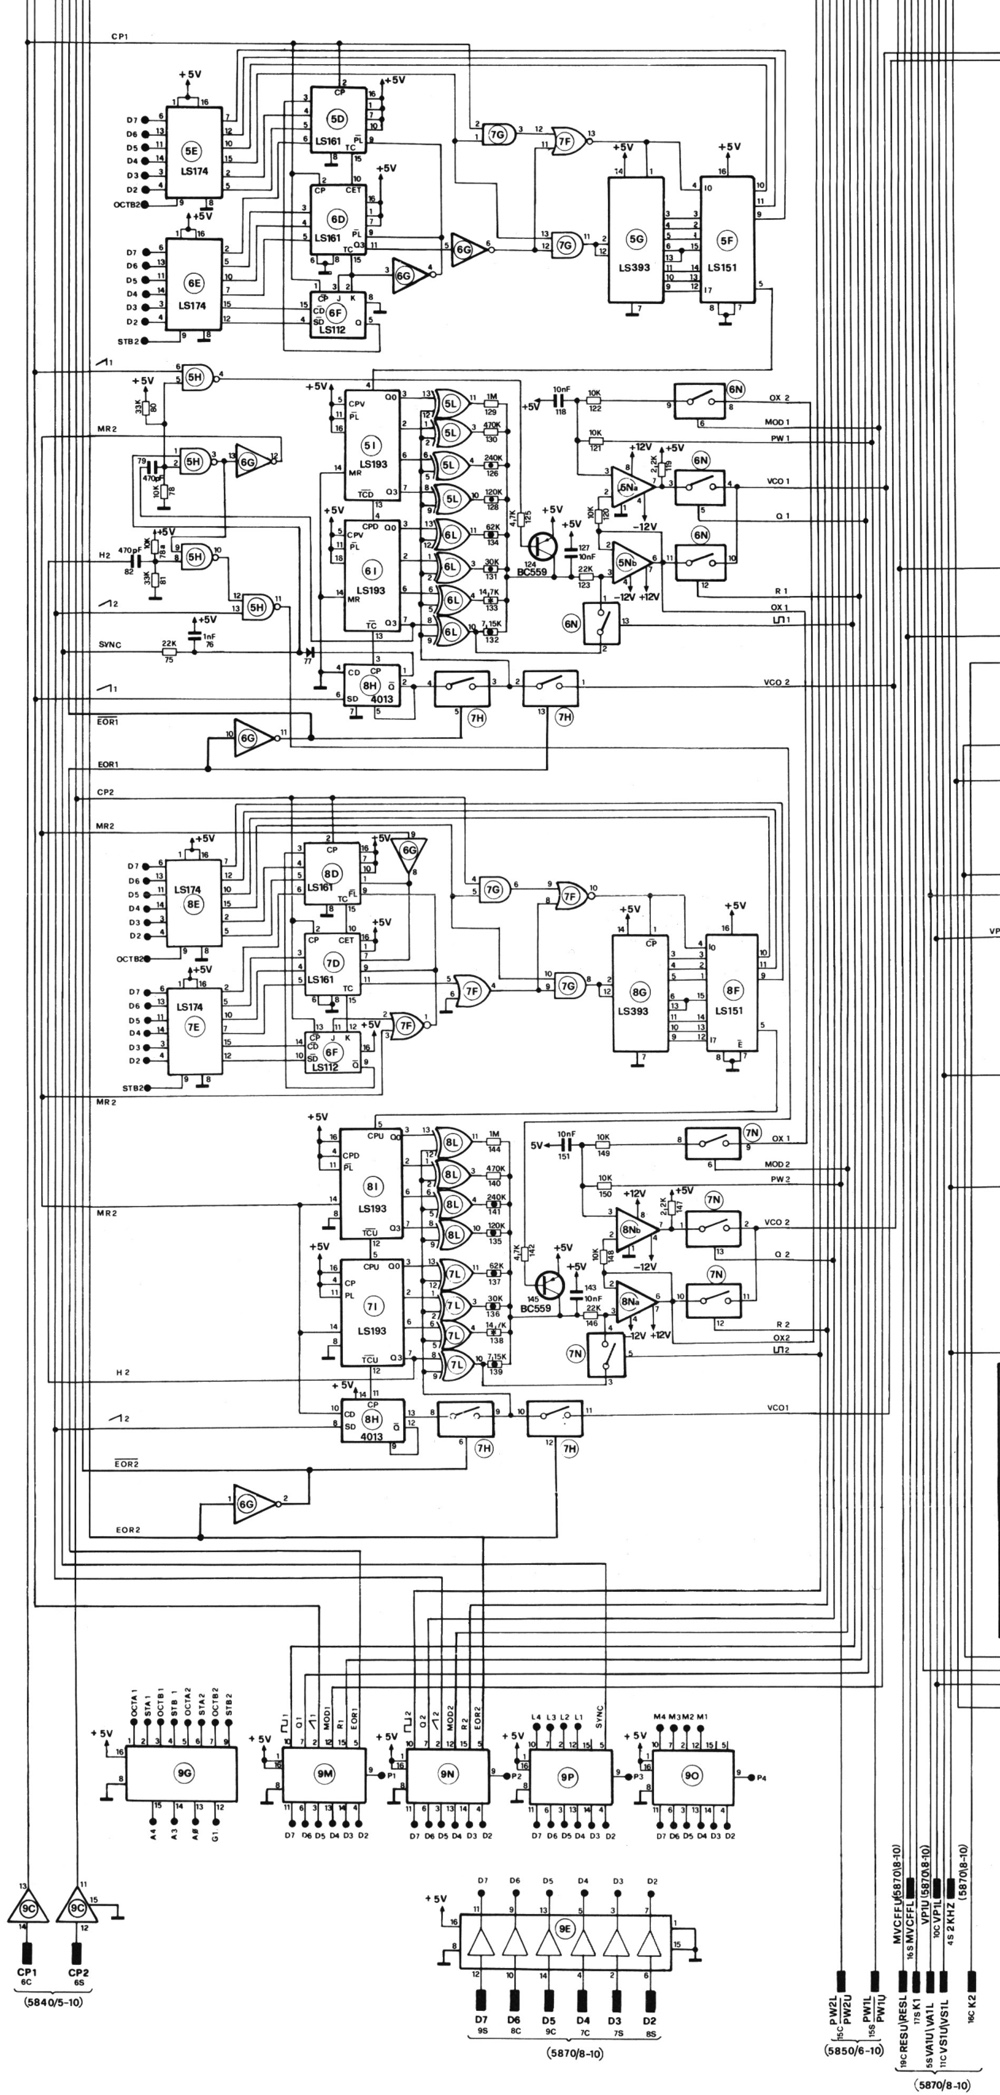 Muff Wiggler View Topic Elka Synthex Is Back Schematic Wiring Diagrams Compared To Quotladderquot On The Second Now We Have Vco1 Vco2 Going Through A Series Of 4066 Switches Which Look Suspiciously Like 4 Bit Dac Ladder